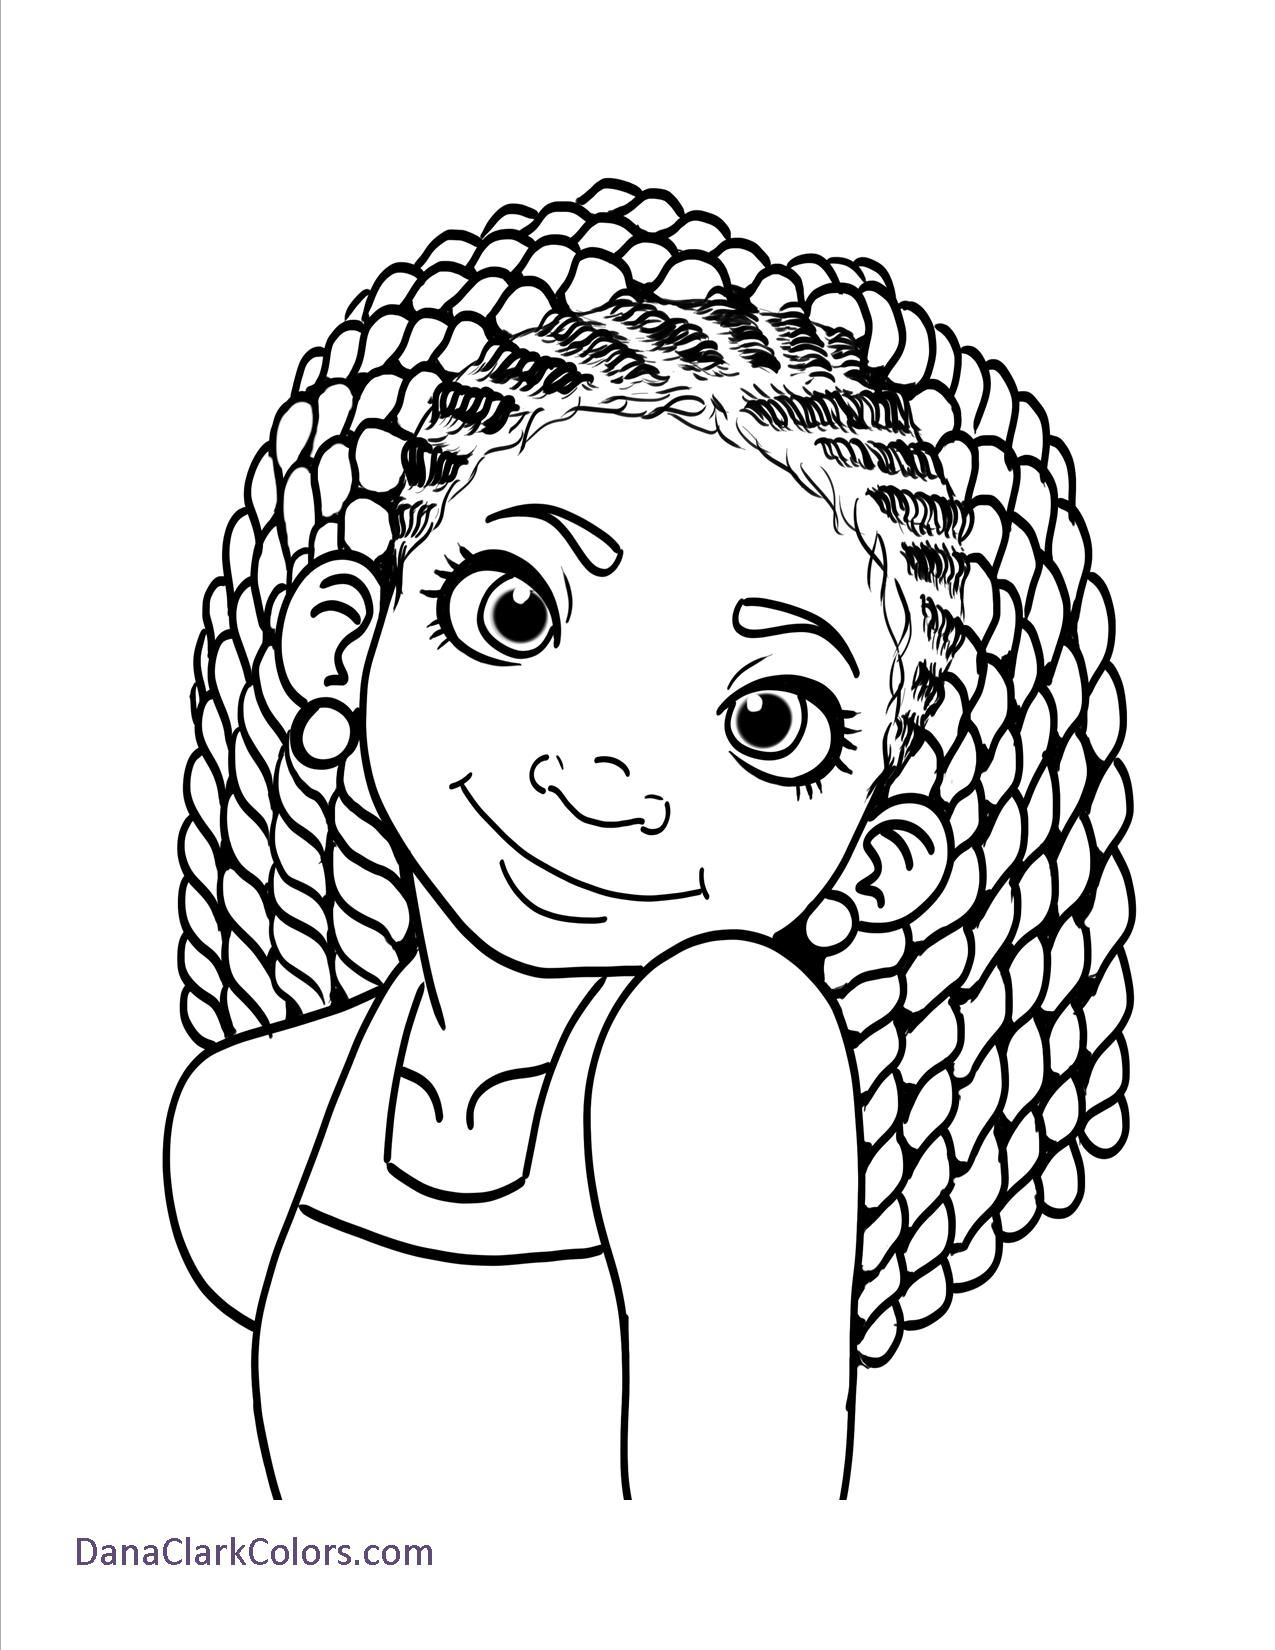 Free Coloring Page 1 School Coloring pages Free